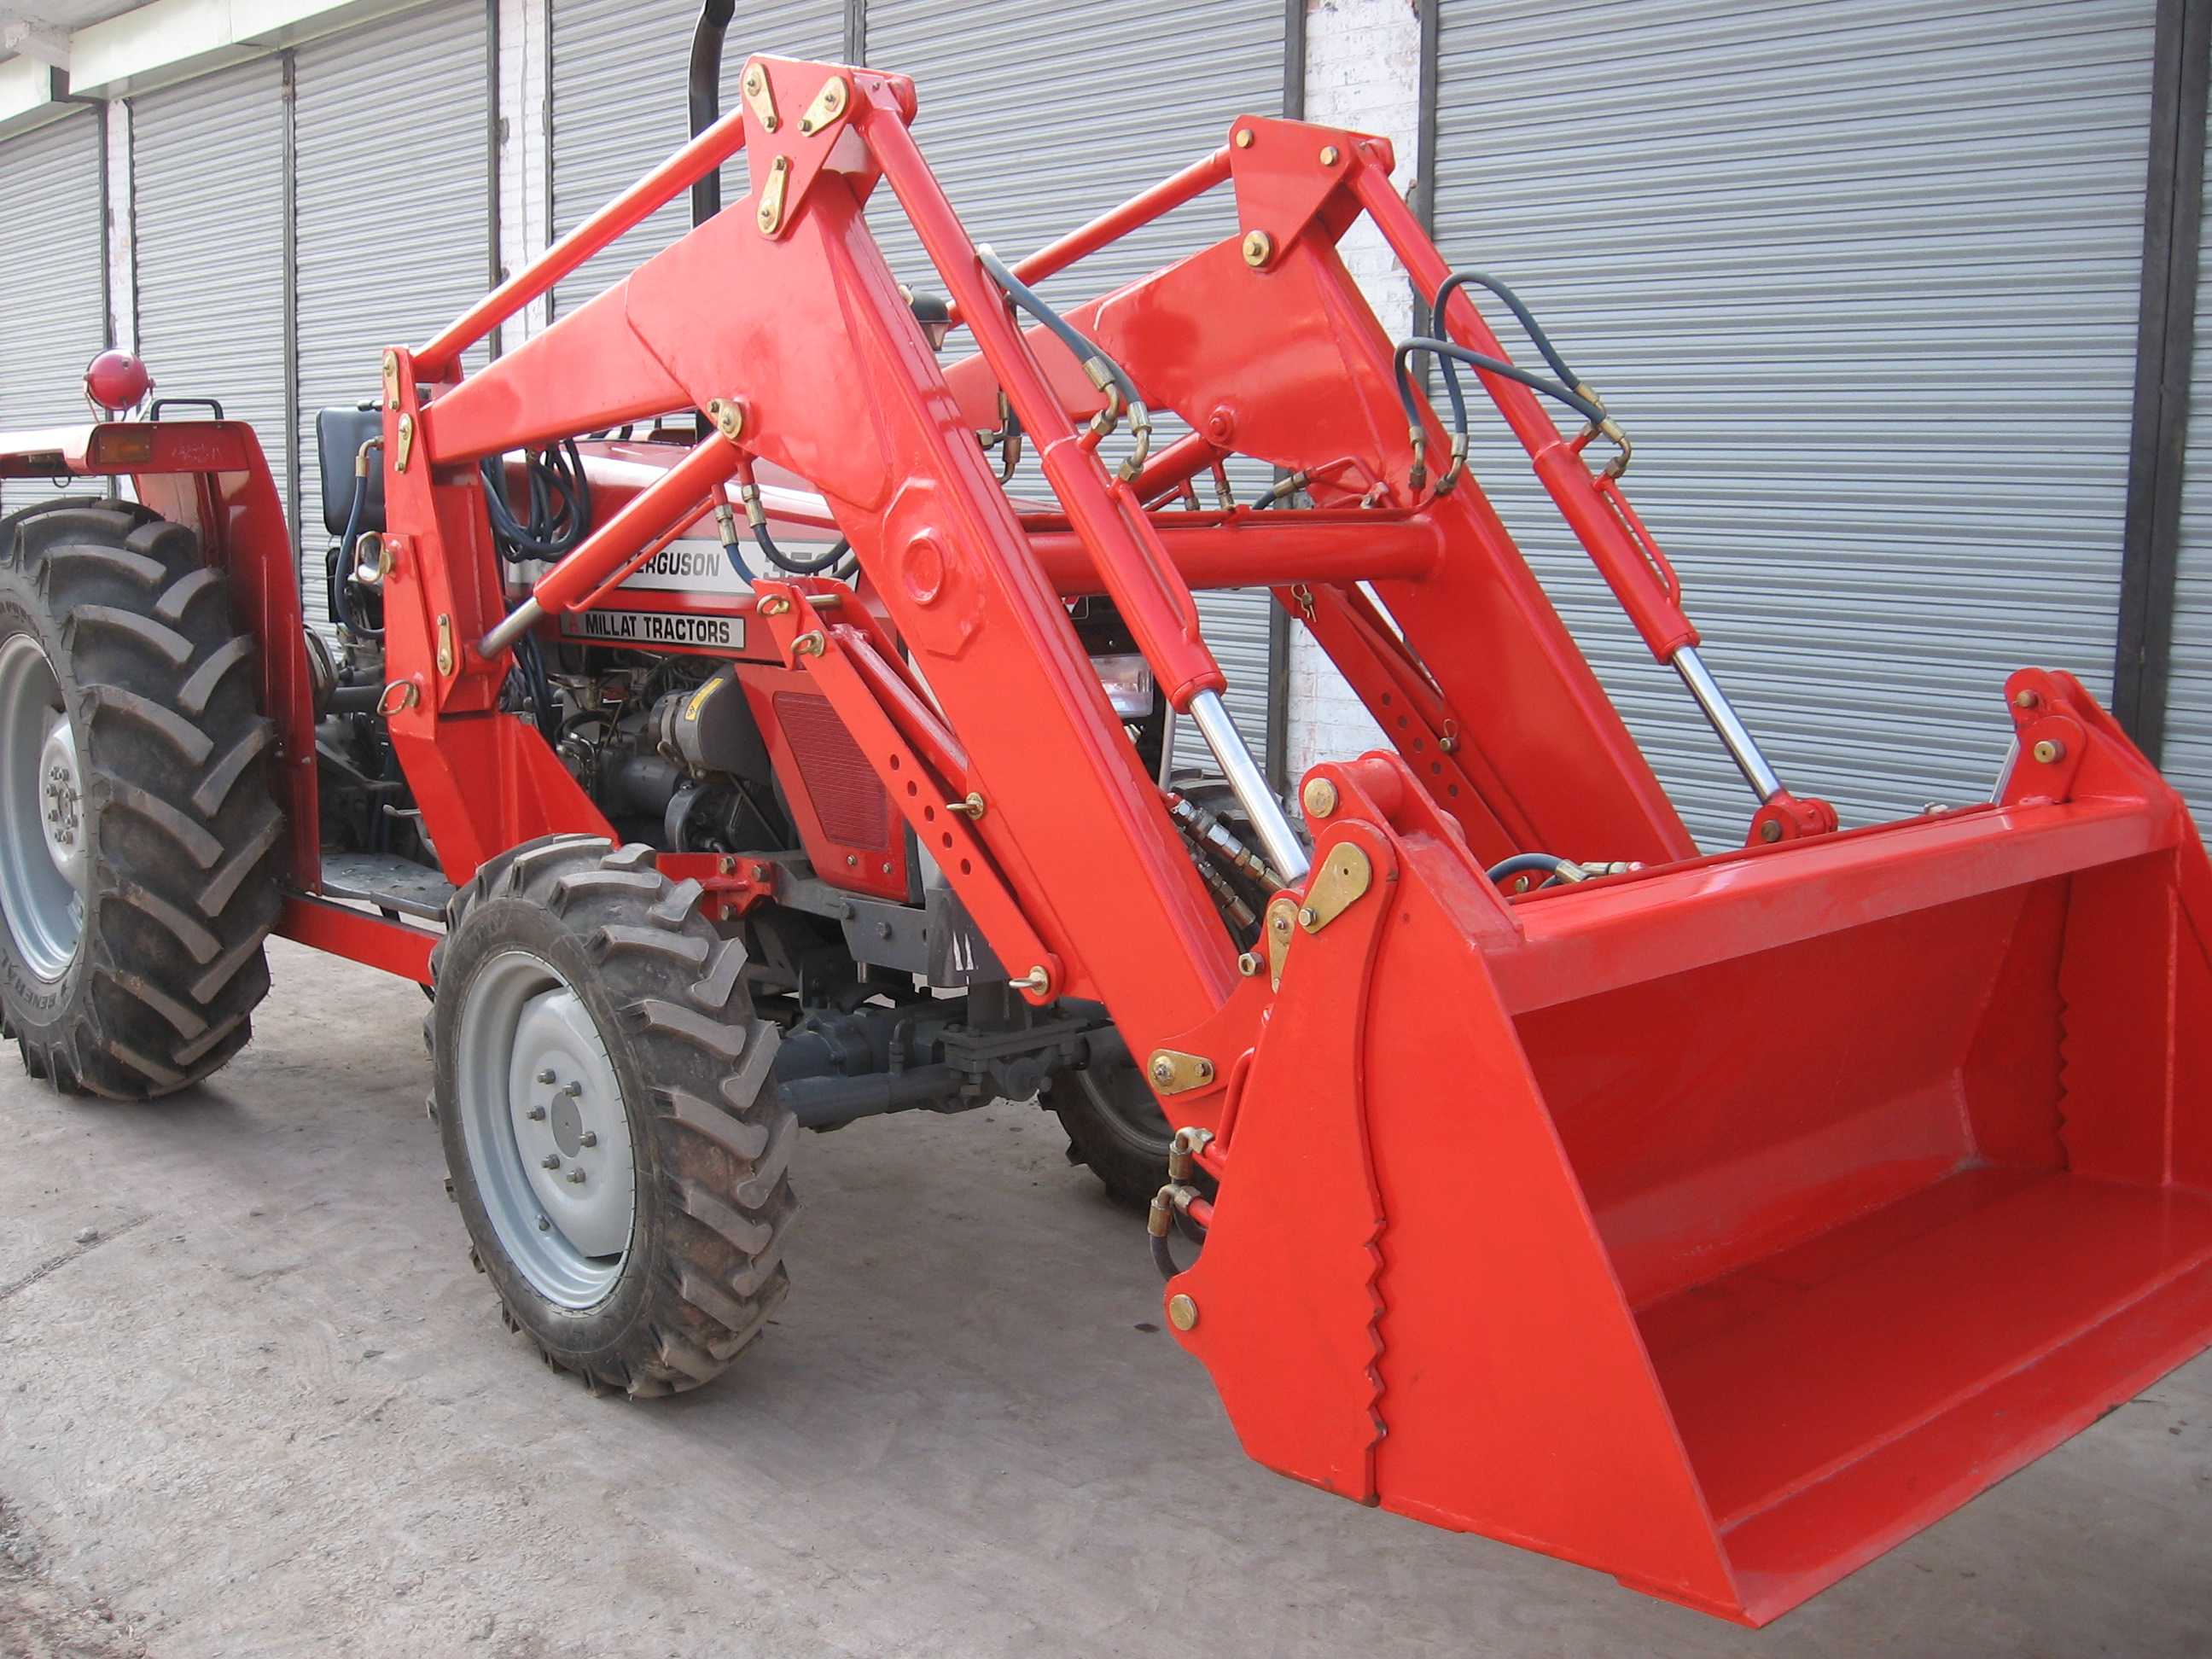 4 in 1 Loader Pakistan